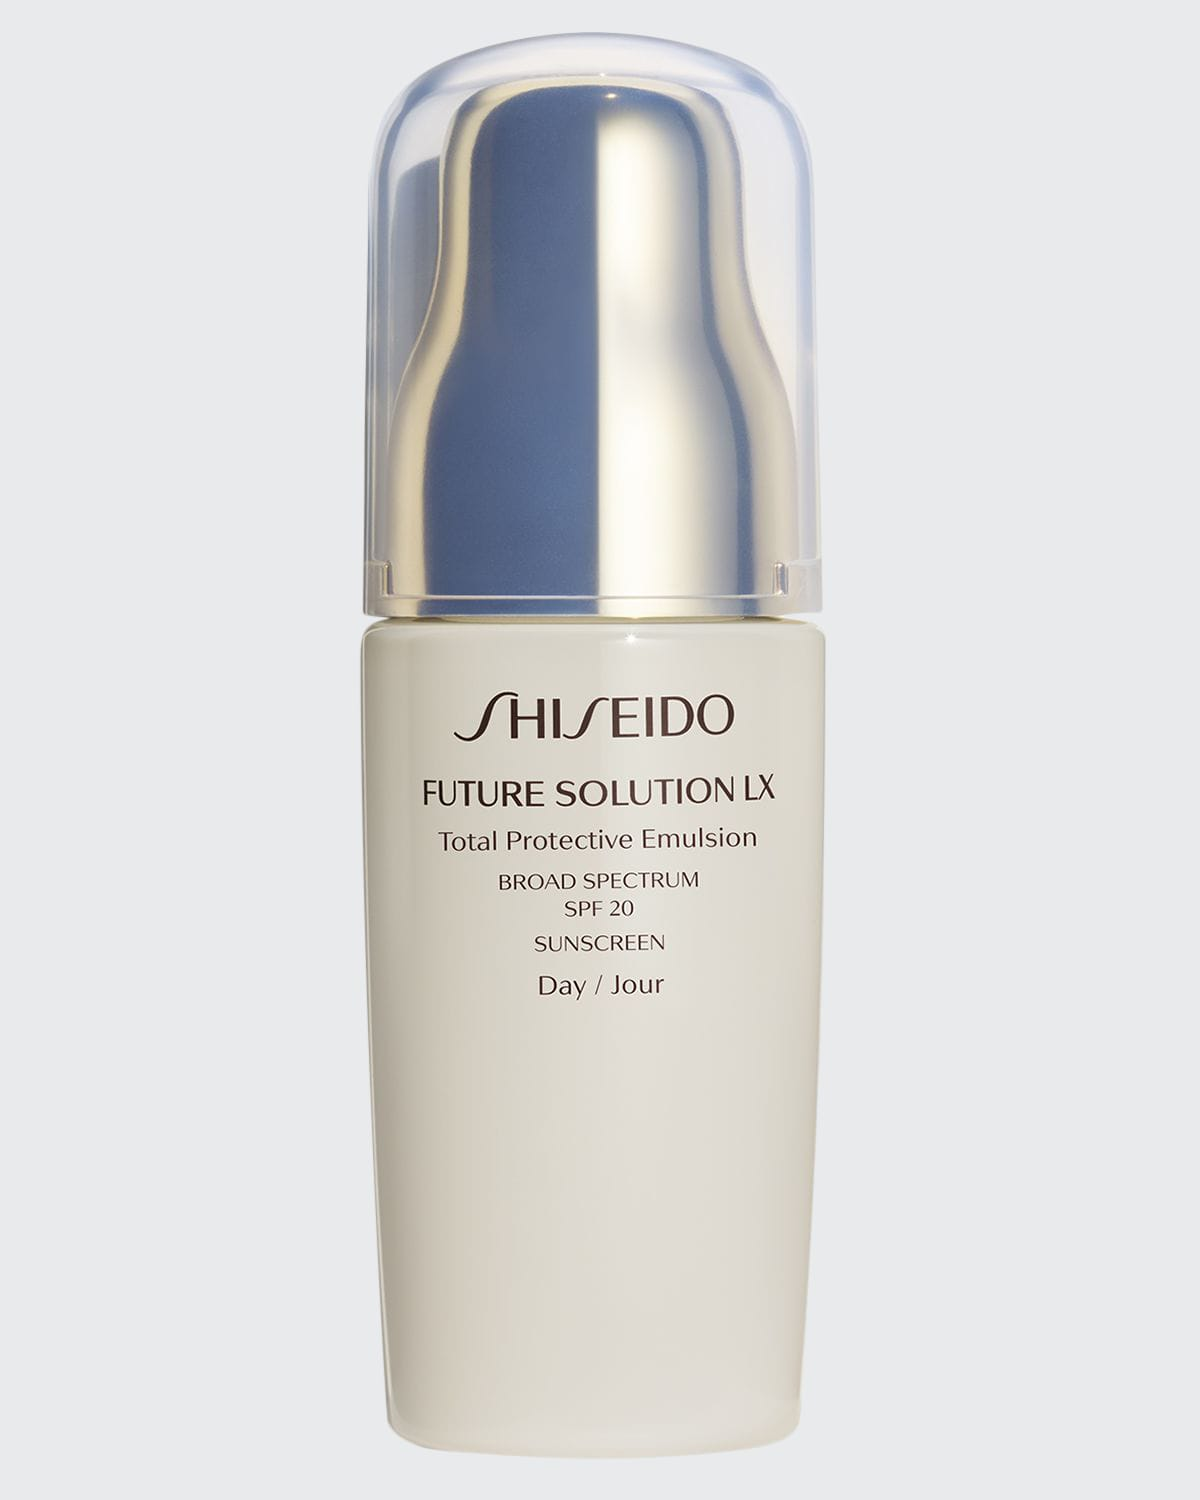 Future Solution LX Total Protective Emulsion Broad Spectrum SPF 20 Sunscreen